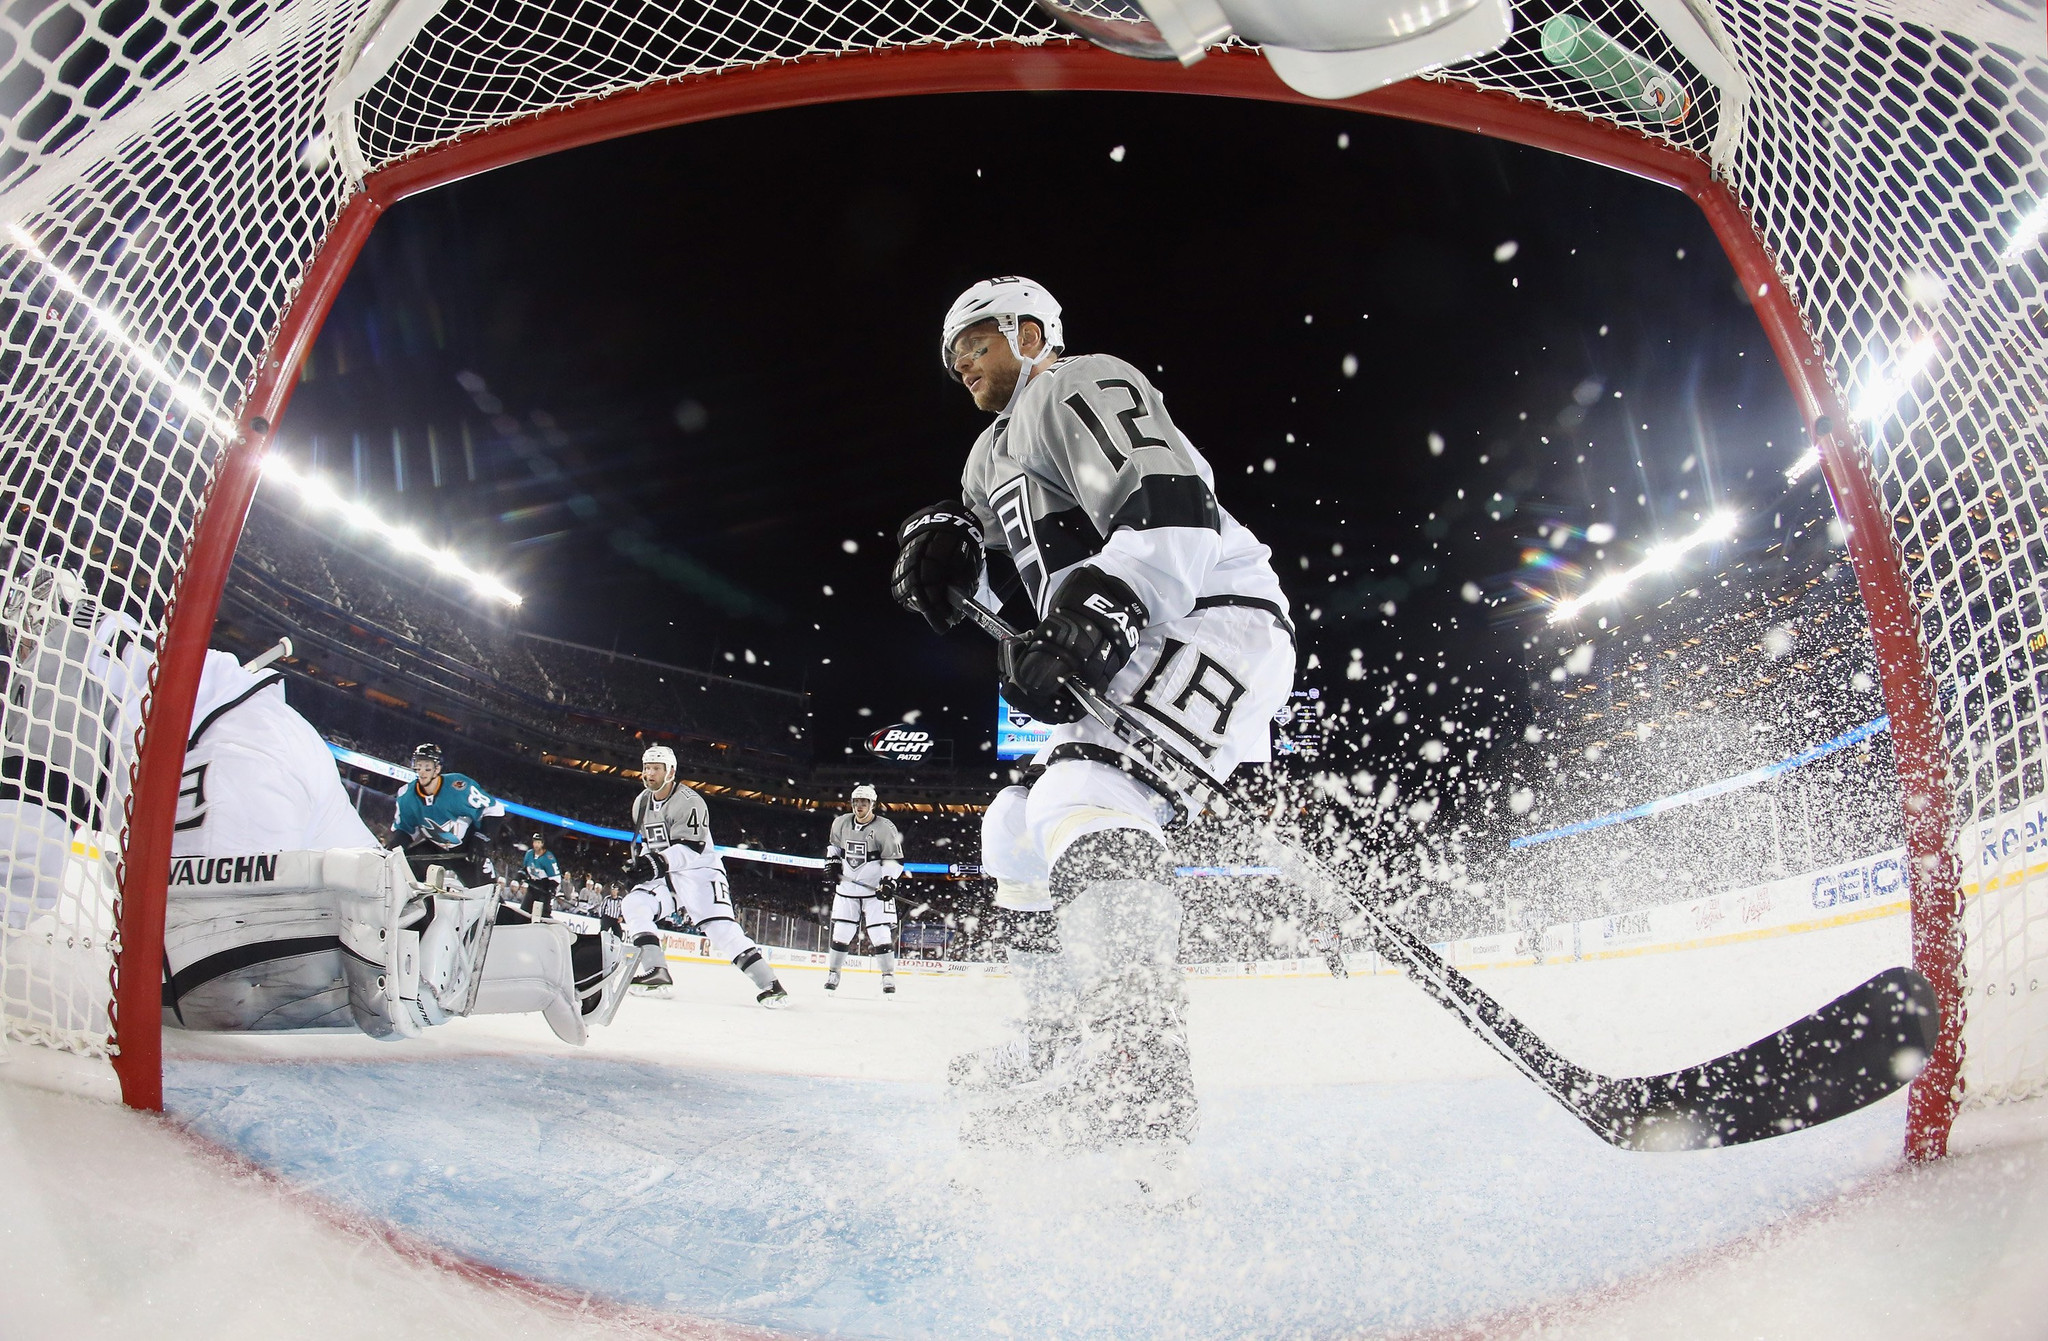 NHL Pluses And Minuses: Kings And Sharks Headed In Opposite Directions